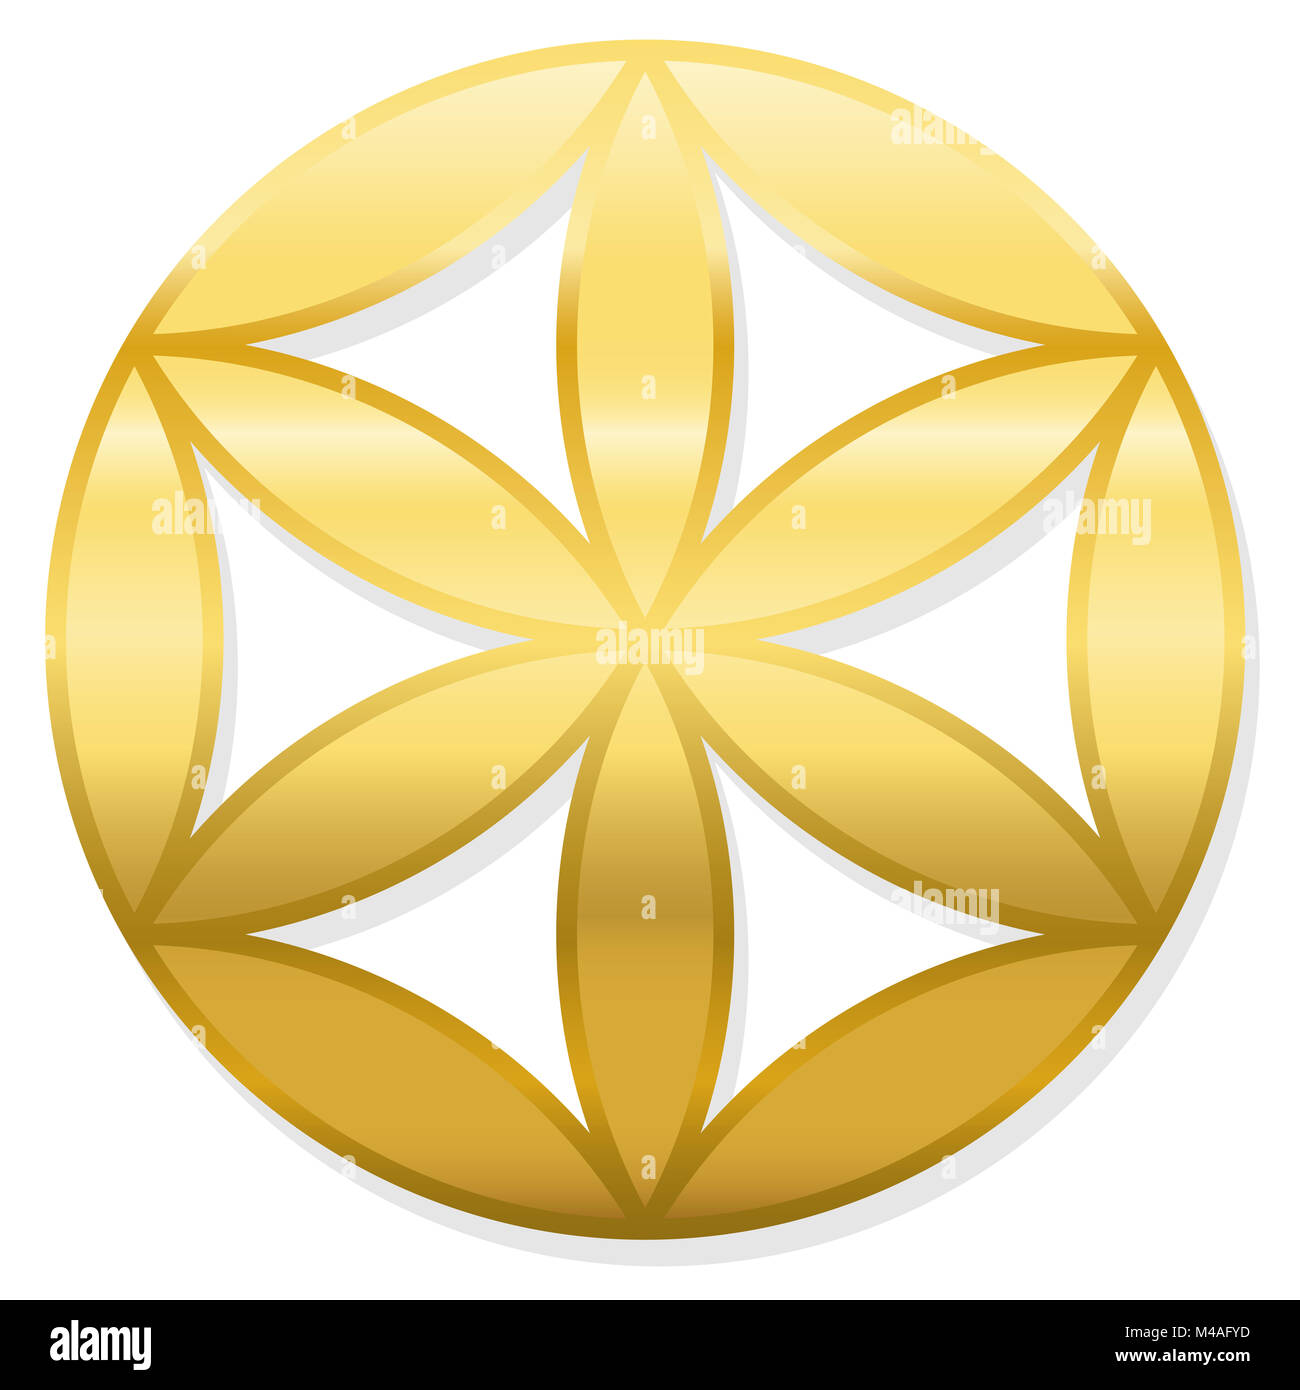 Golden Baby Flower of Life. Little geometrical figure, composed of multiple evenly-spaced, overlapping circles. - Stock Image